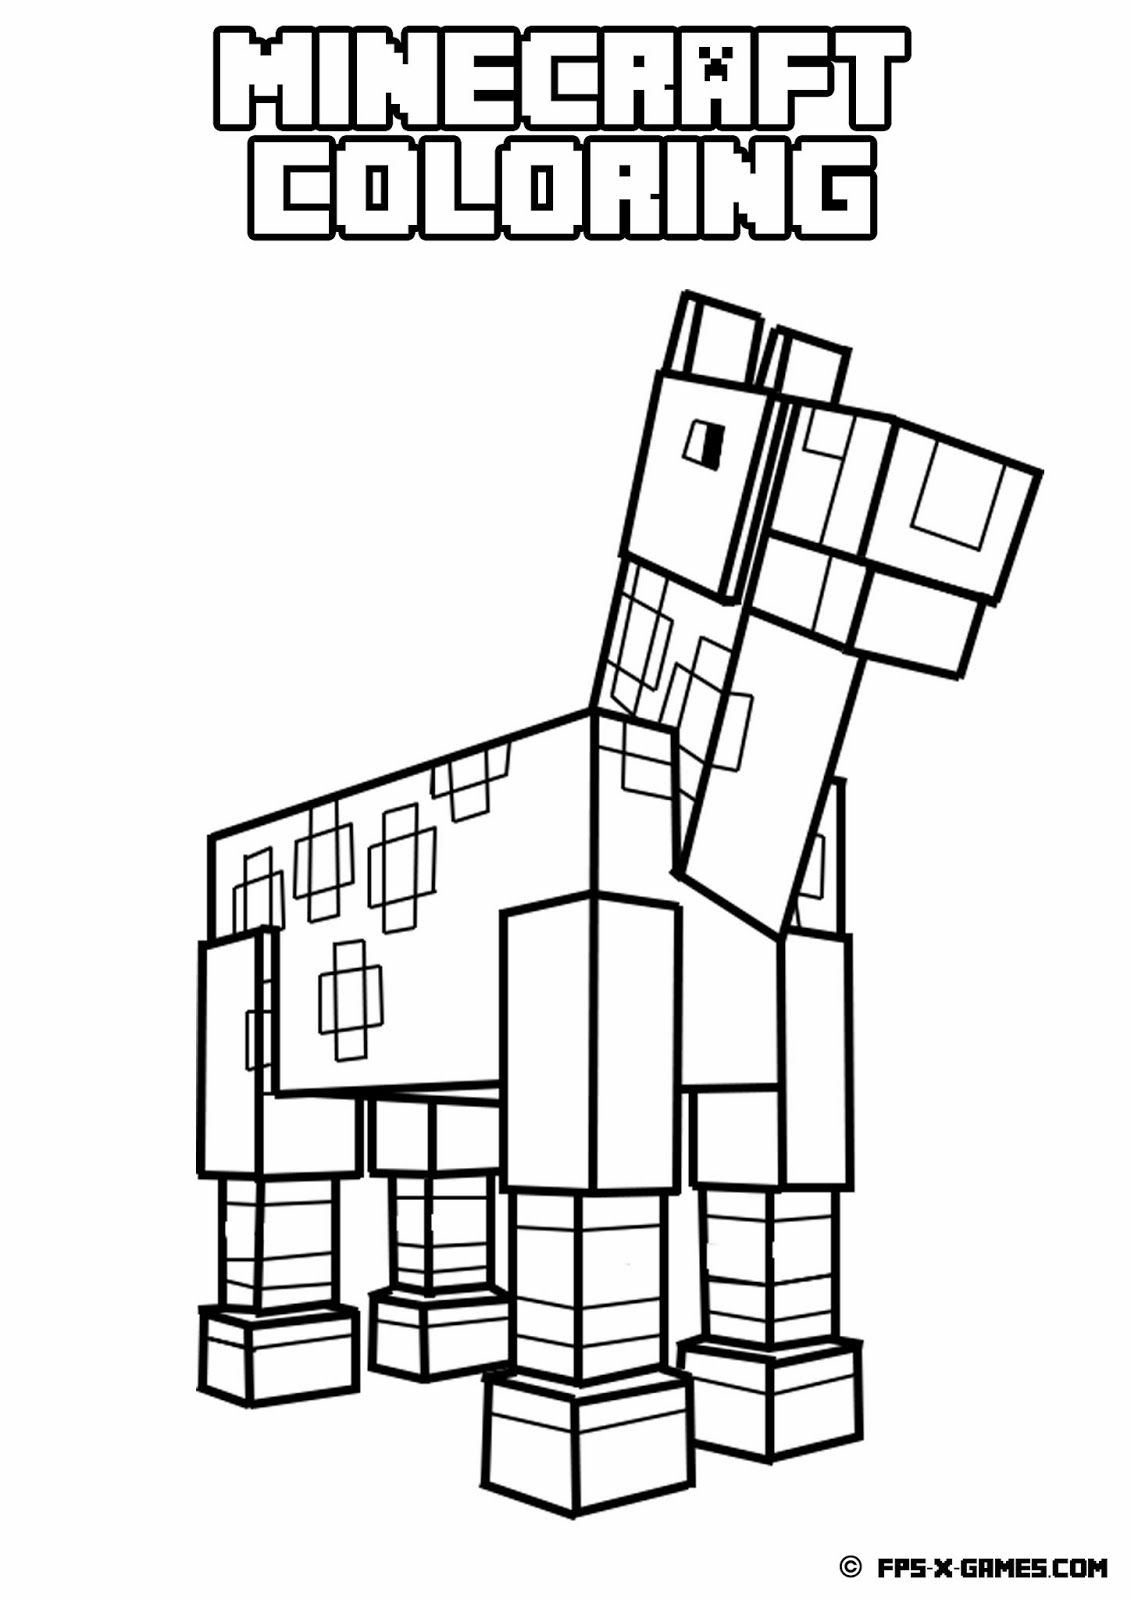 Free Printable Minecraft Coloring Pages Only Coloring Pages Minecraft Coloring Pages Horse Coloring Pages Coloring Pages For Kids